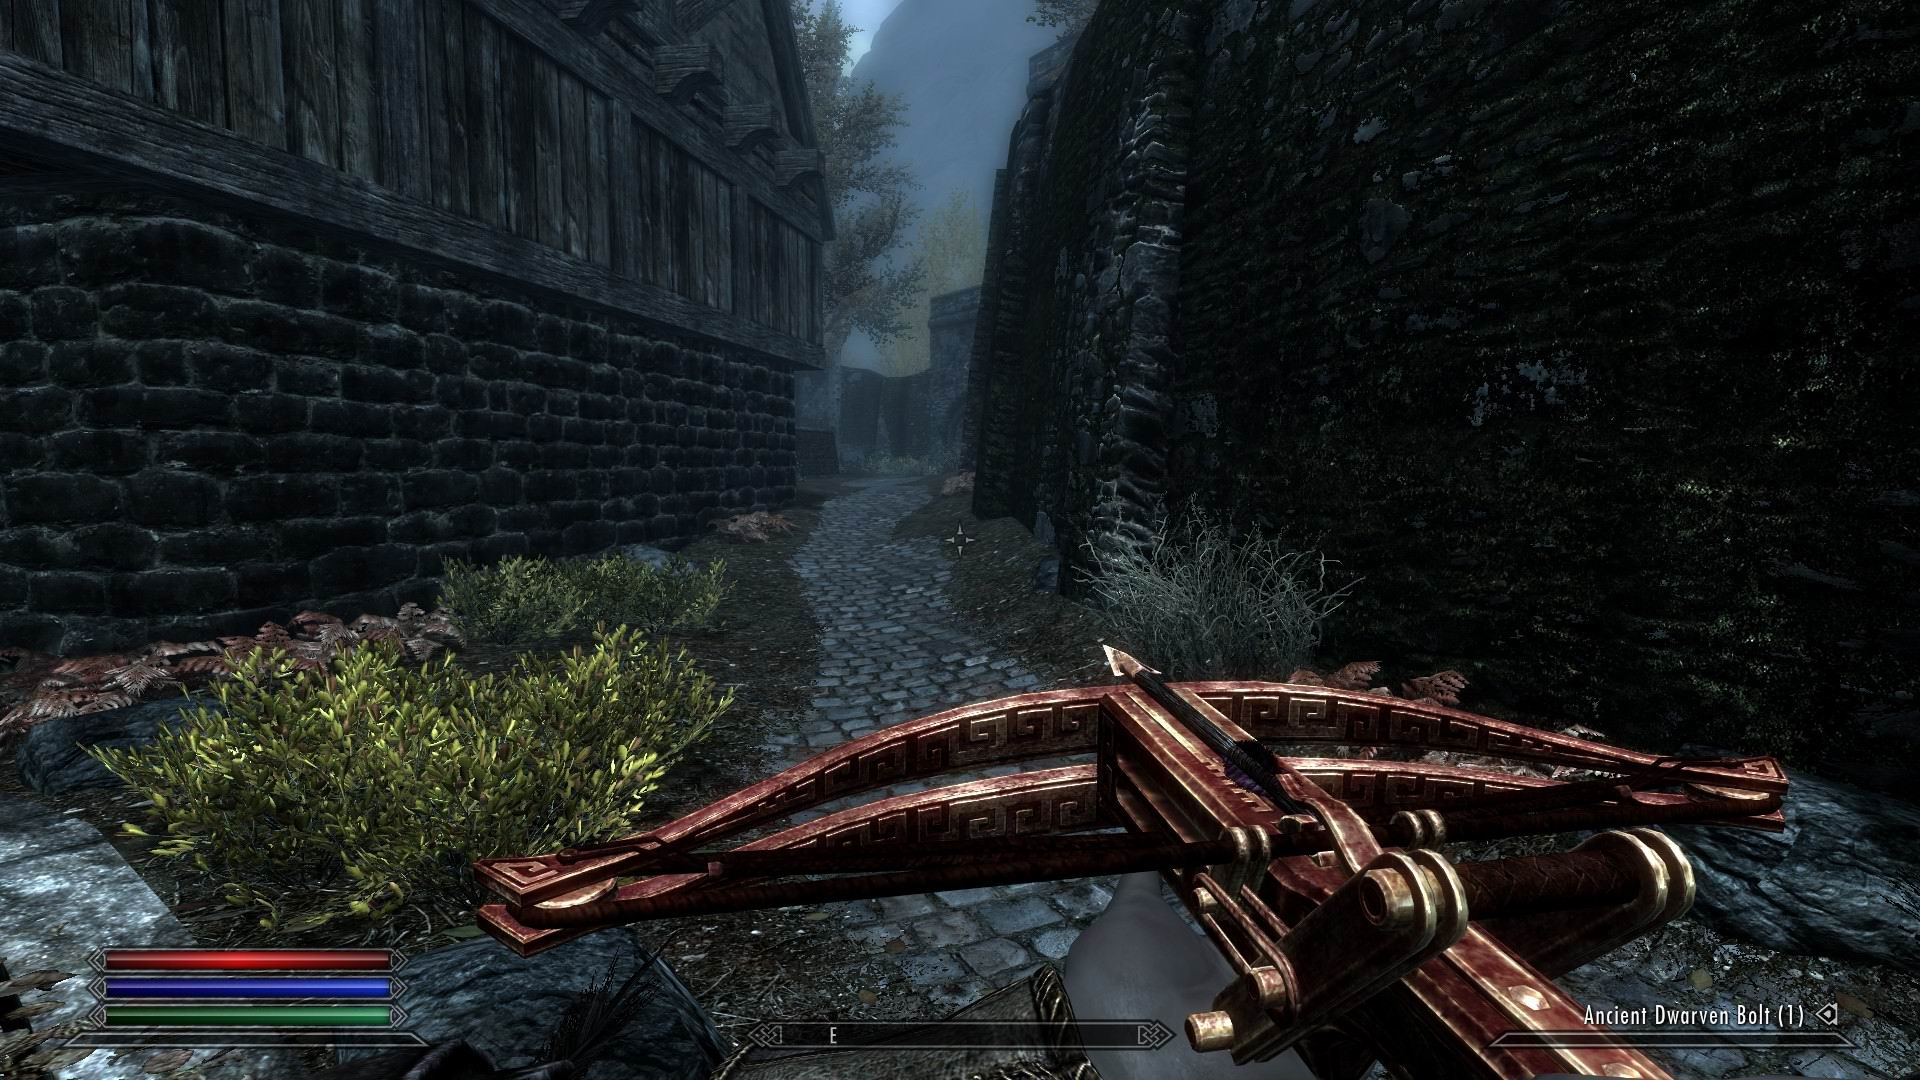 Dfb dawnguard crossbow expansion dfb dawnguard crossbow expansion2 voltagebd Choice Image